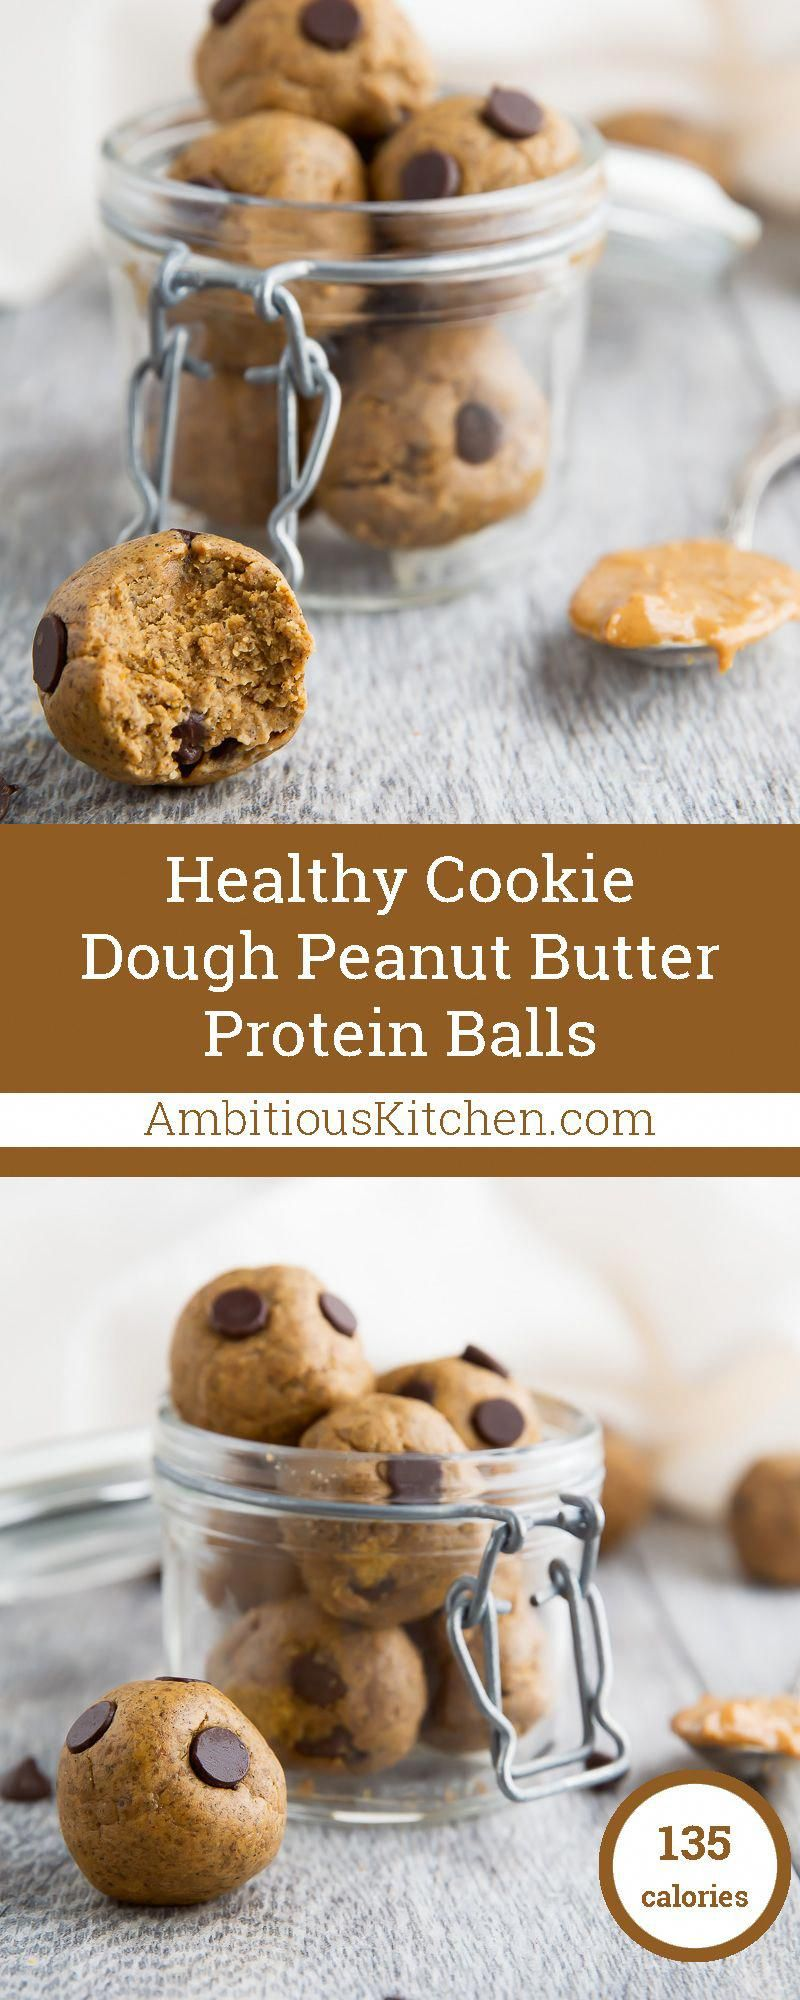 Amazing protein-packed peanut butter balls that taste like a peanut butter cup and cookie dough. No sugar added, grain free, gluten free and over 5g protein per ball! #proteincookiedough